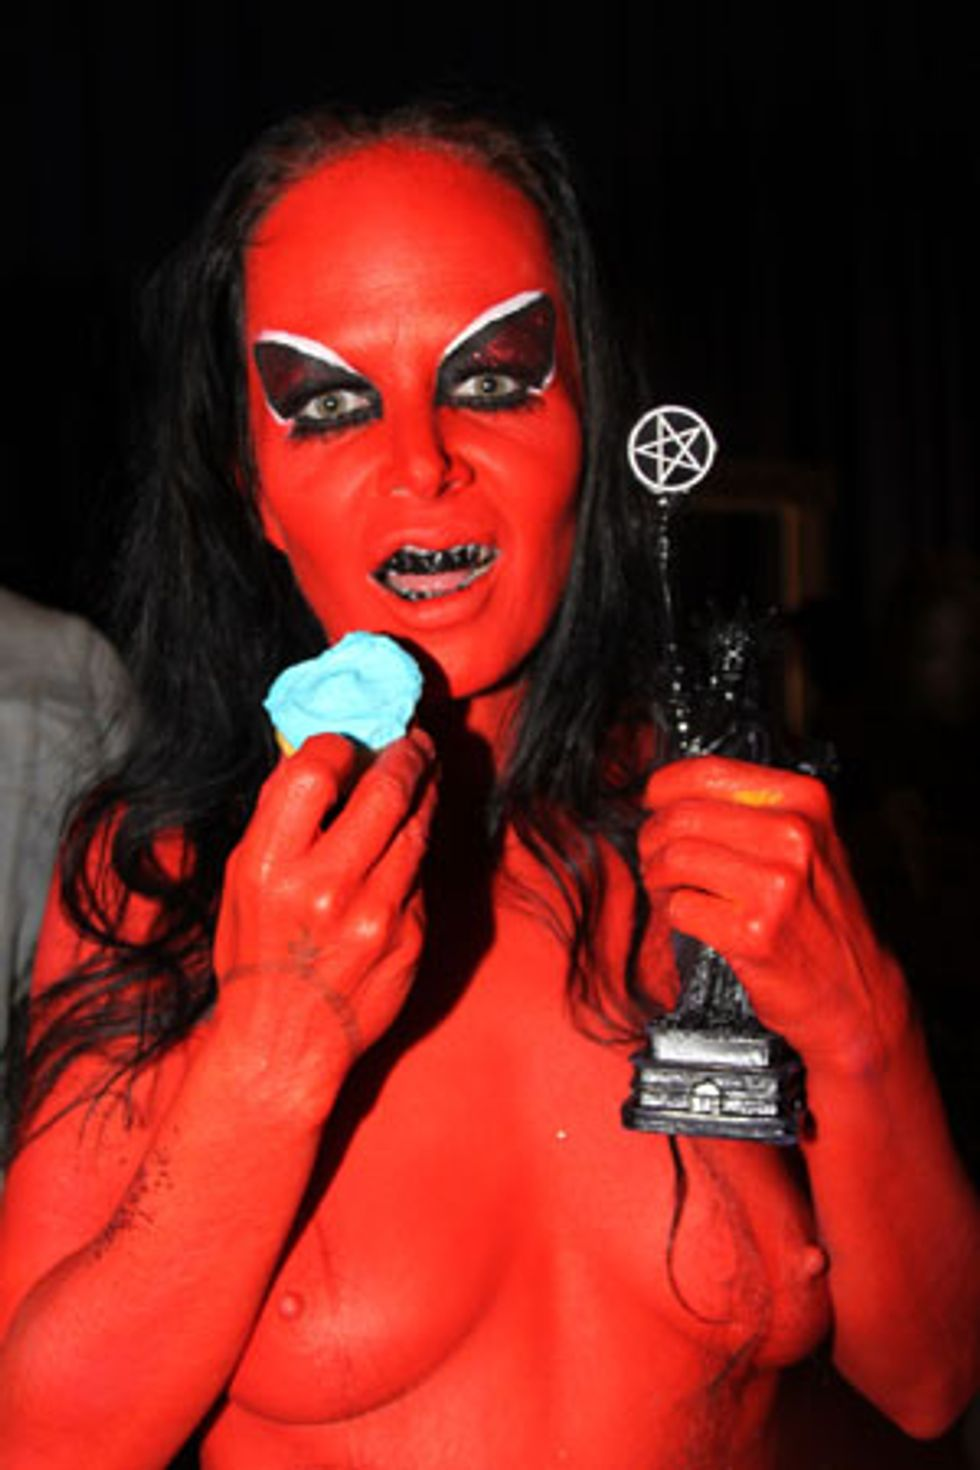 M*A*C Presents Kembra Pfahler and The Voluptuous Horror of Karen Black